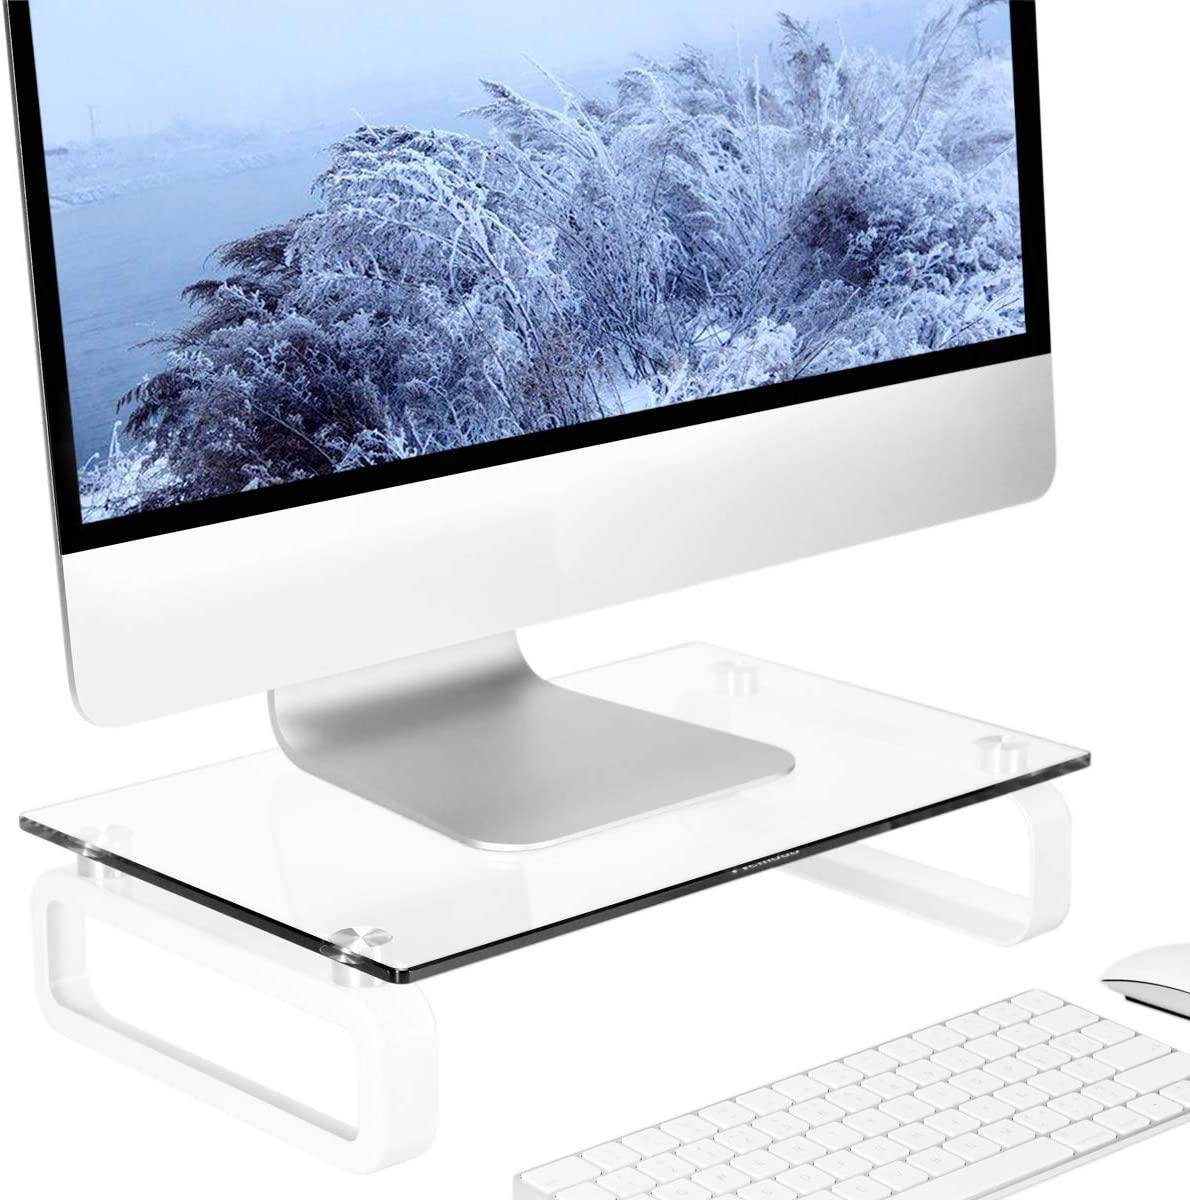 Clear Computer Monitor Stand Riser Multi Media Desktop Stand for Flat Screen LCD LED TV, Laptop/Notebook/Xbox One, with Tempered Glass and Metal Legs, HD02T-001